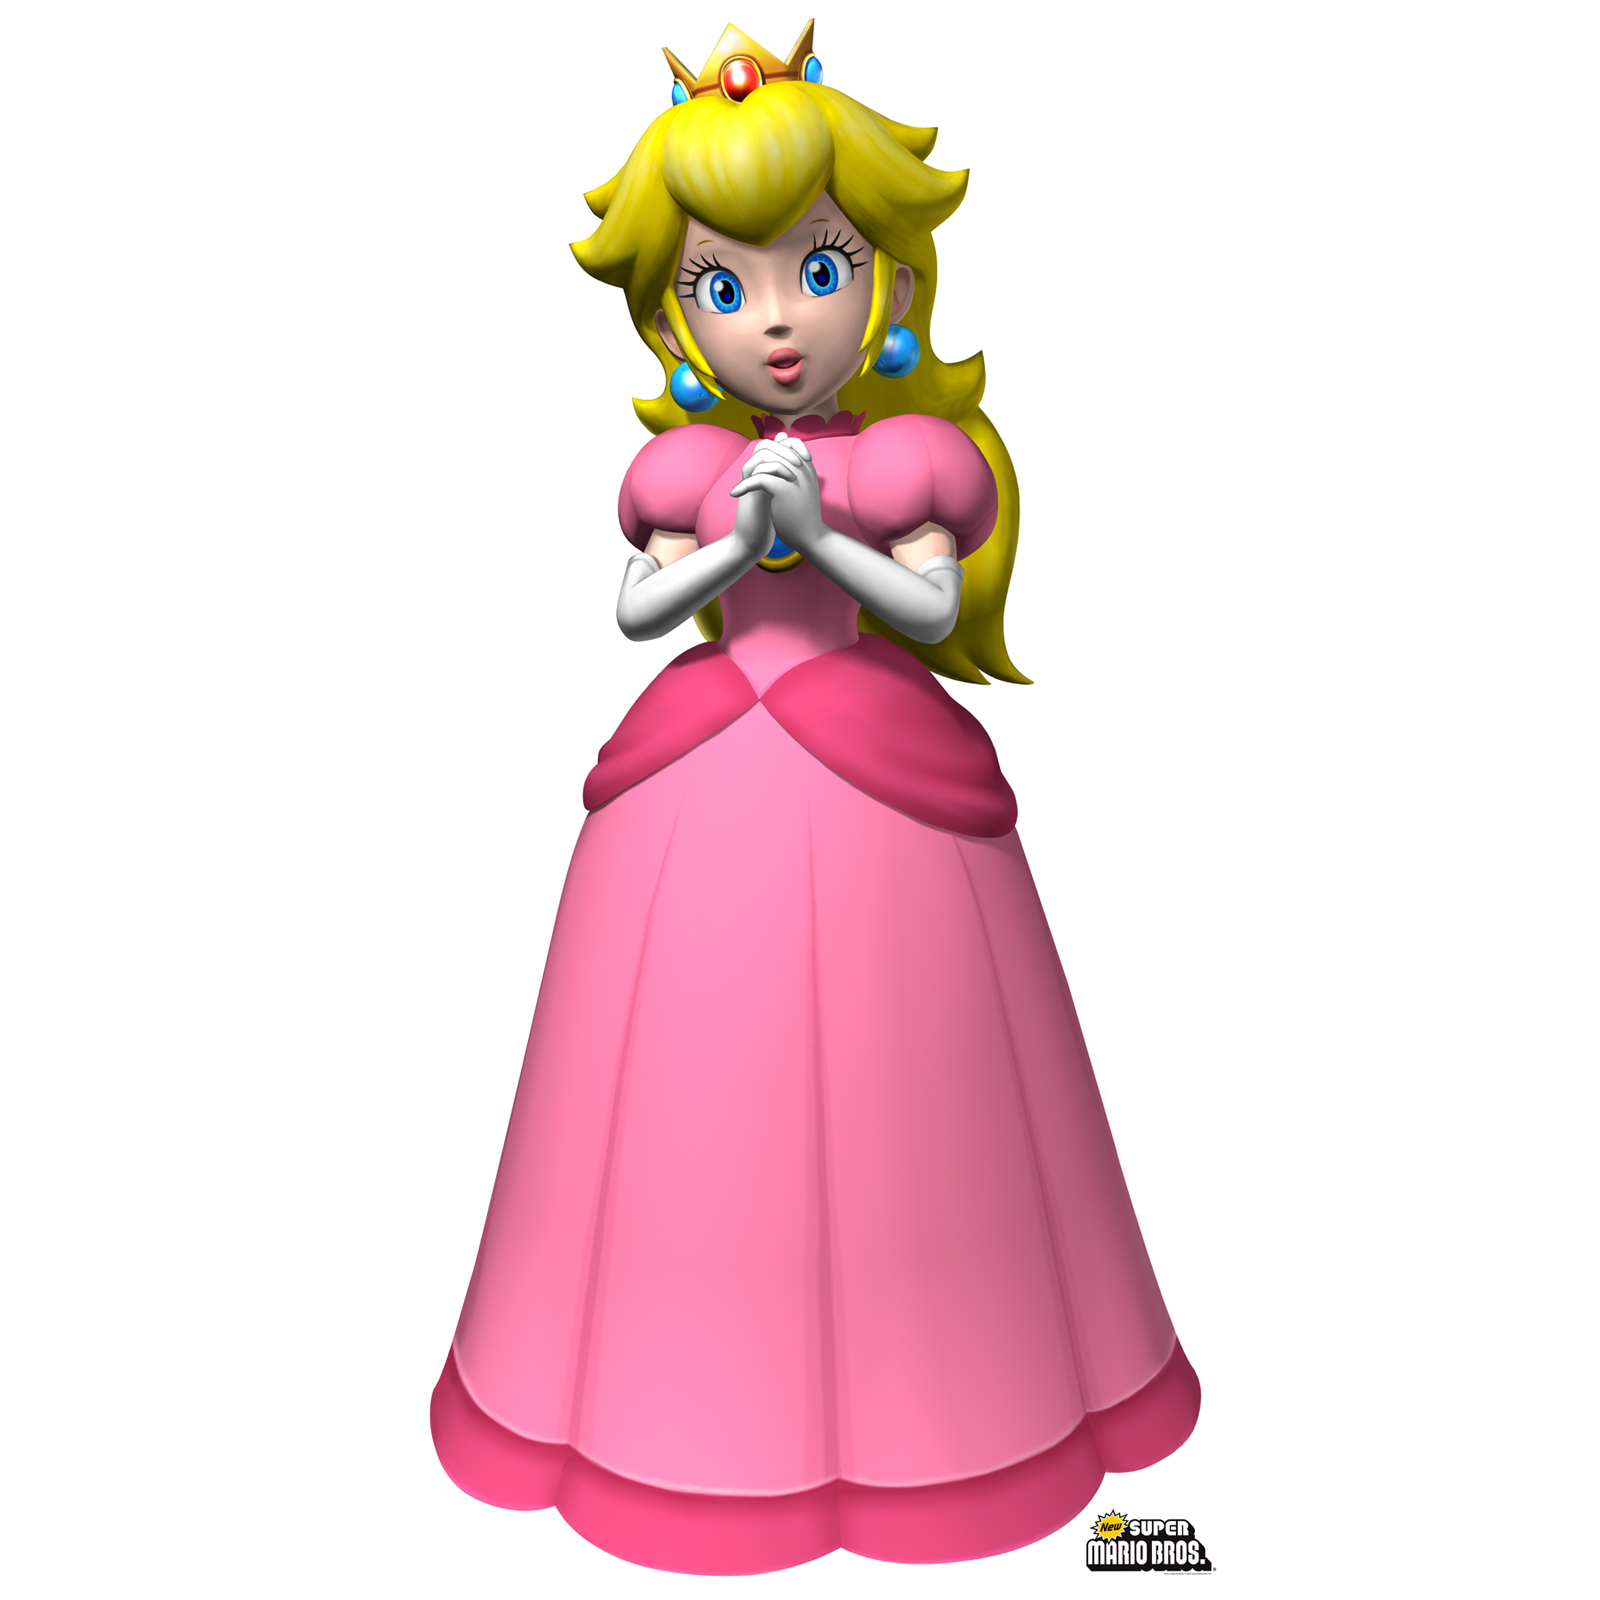 Super Mario Bros. Princess Peach Standup